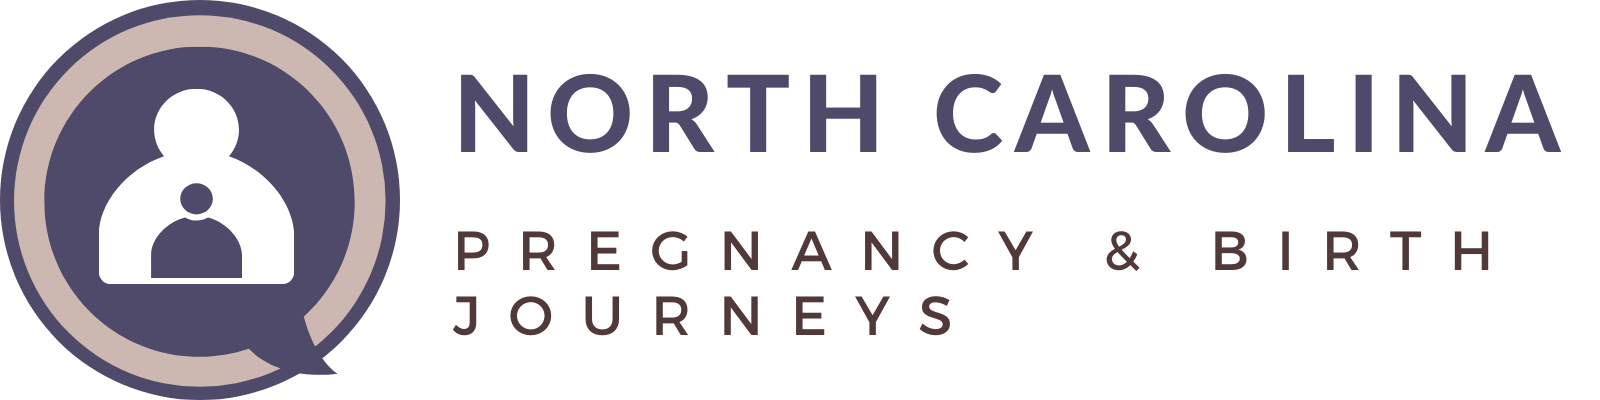 North Carolina Pregnancy & Birth Journeys Logo